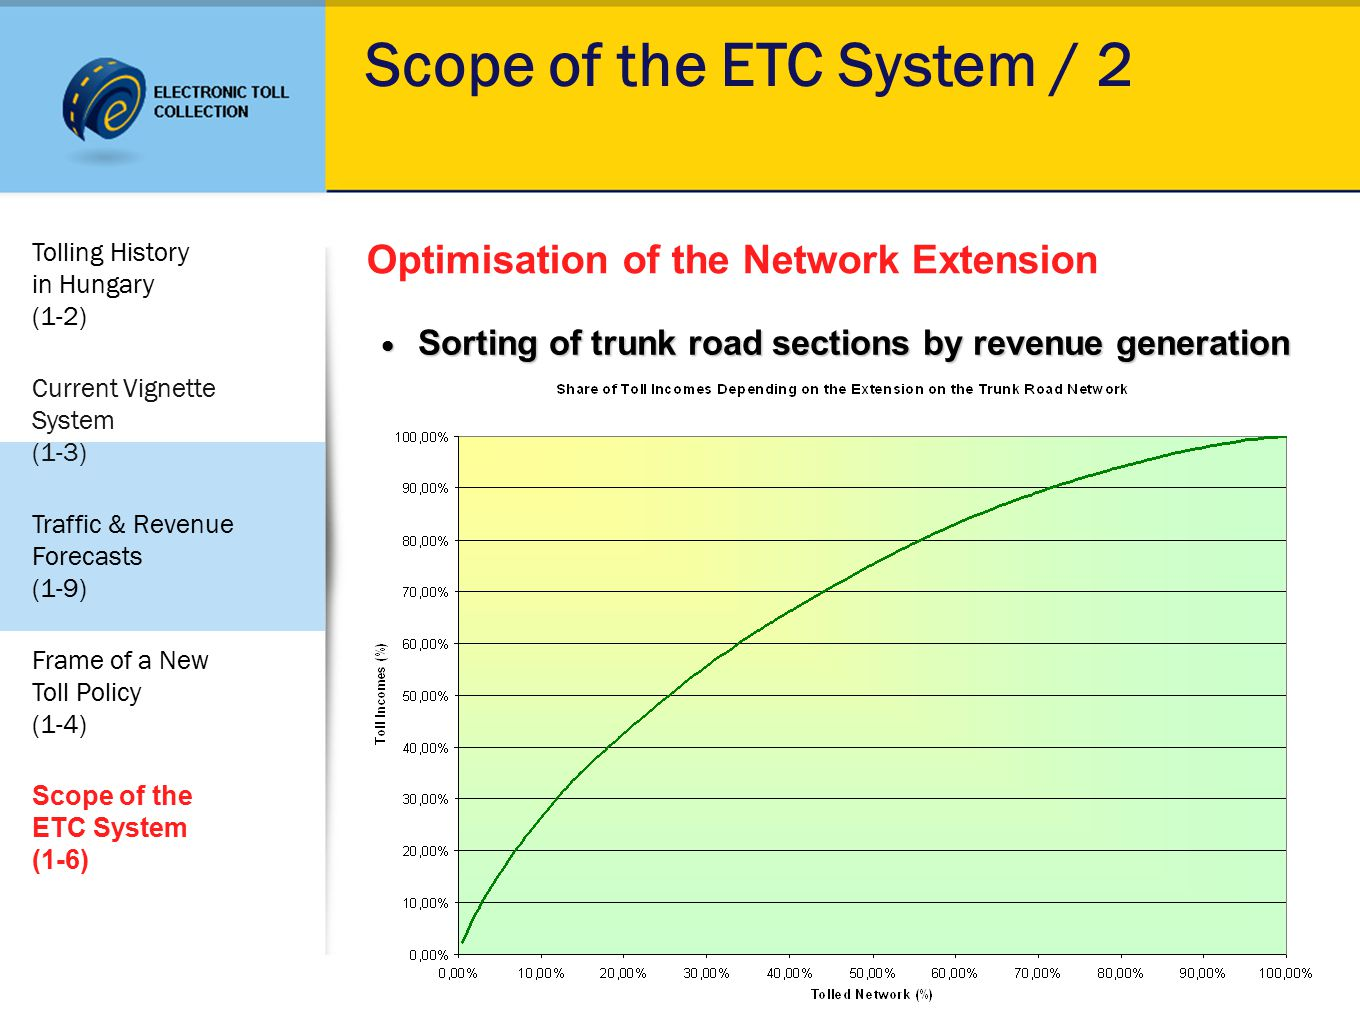 Scope of the ETC System / 2 Optimisation of the Network Extension Sorting of trunk road sections by revenue generation Sorting of trunk road sections by revenue generation Tolling History in Hungary (1-2) Current Vignette System (1-3) Traffic & Revenue Forecasts (1-9) Frame of a New Toll Policy (1-4) Scope of the ETC System (1-6)